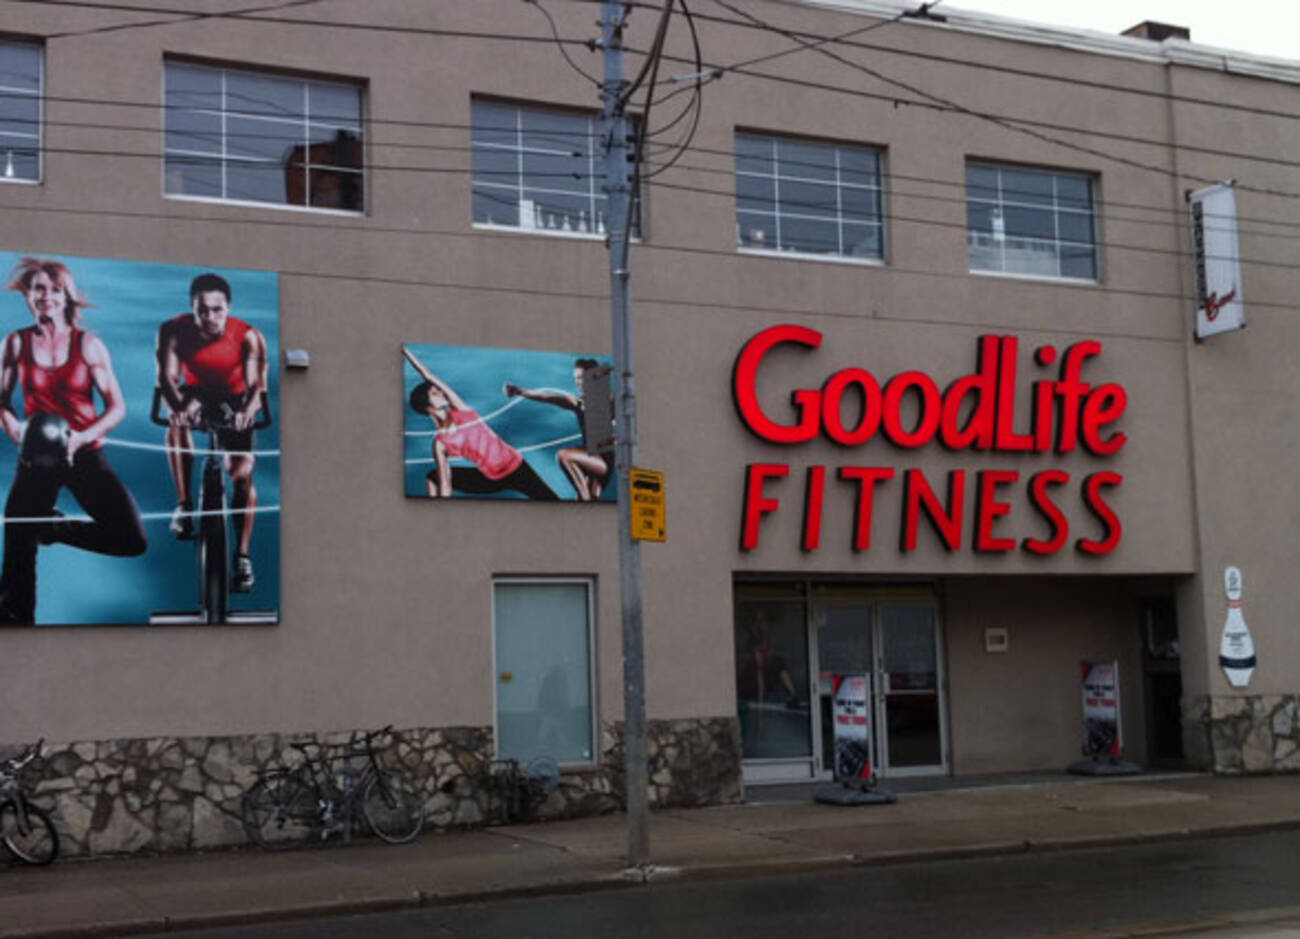 Goodlife Fitness Toronto Blogto Toronto